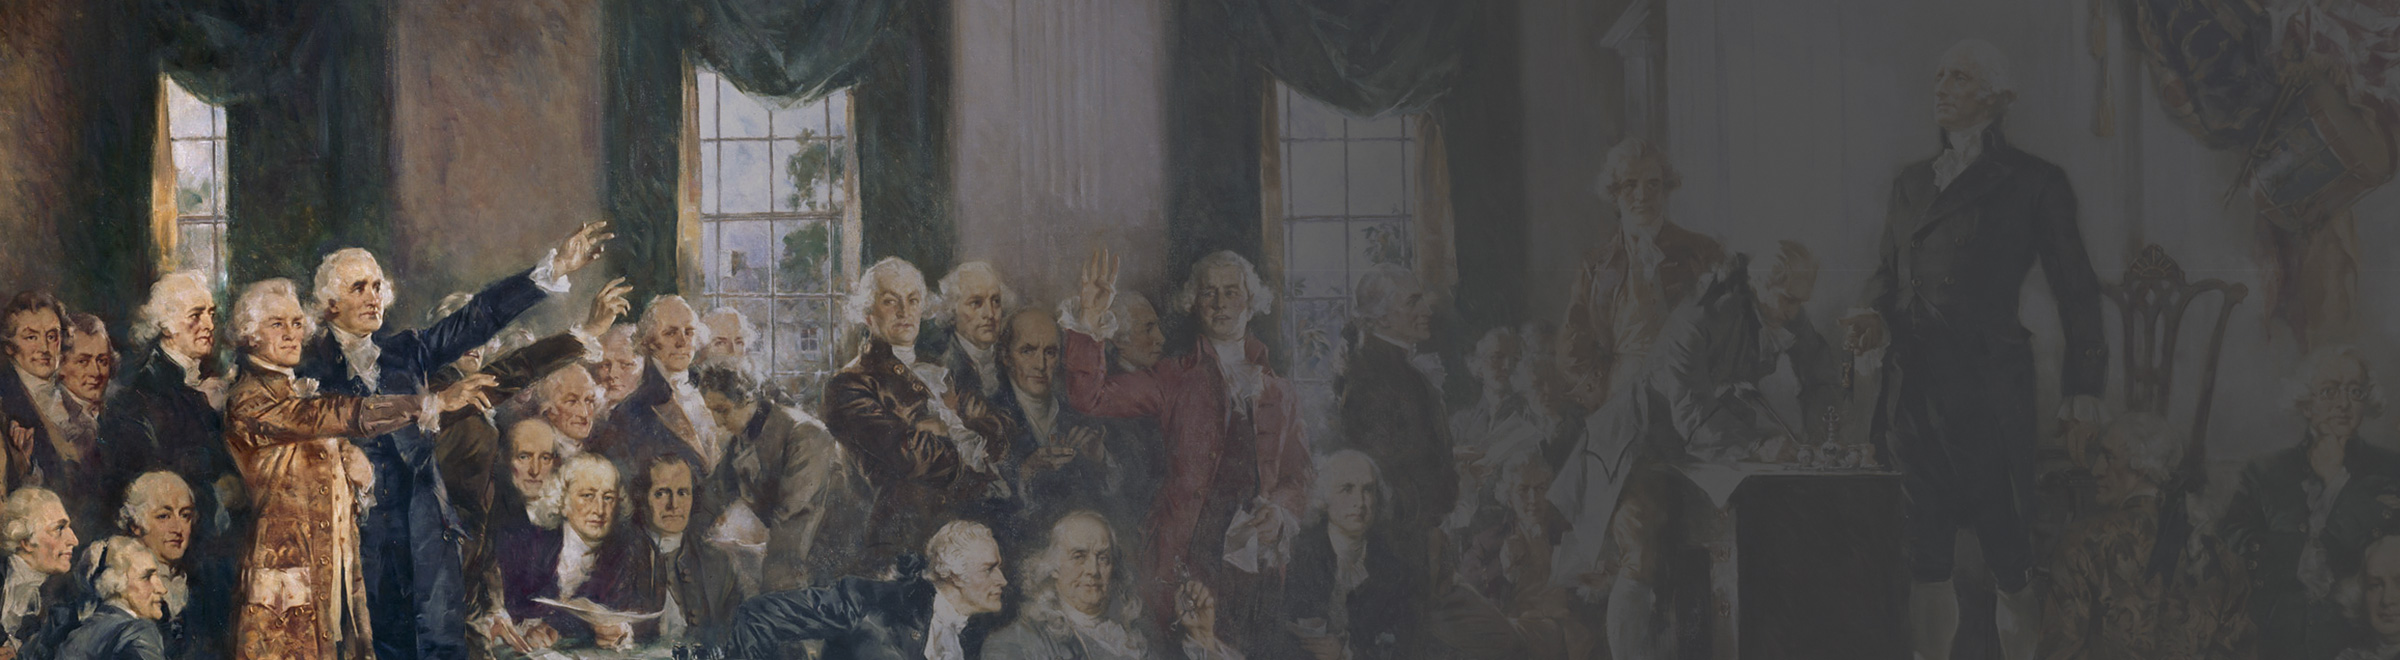 Painting of founding fathers drafting constitution